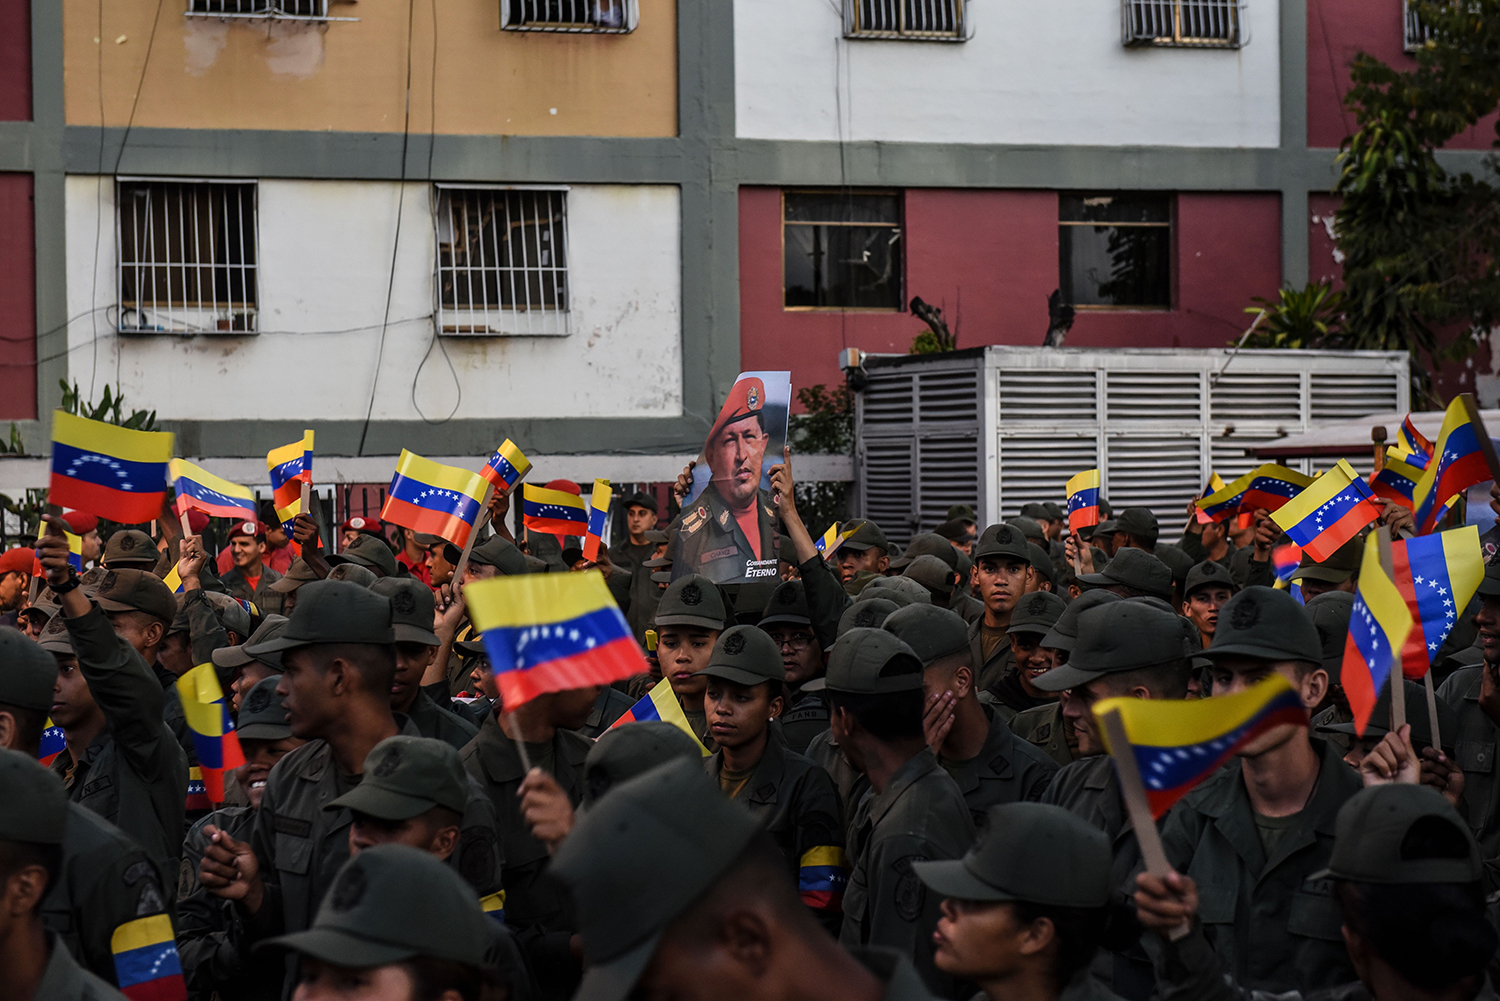 Venezuelan army soldiers raise the national flag while taking part in a rally in Caracas on Feb. 4 to commemorate the coup led by late president Hugo Chavez 28 years ago. YURI CORTEZ/AFP via Getty Images